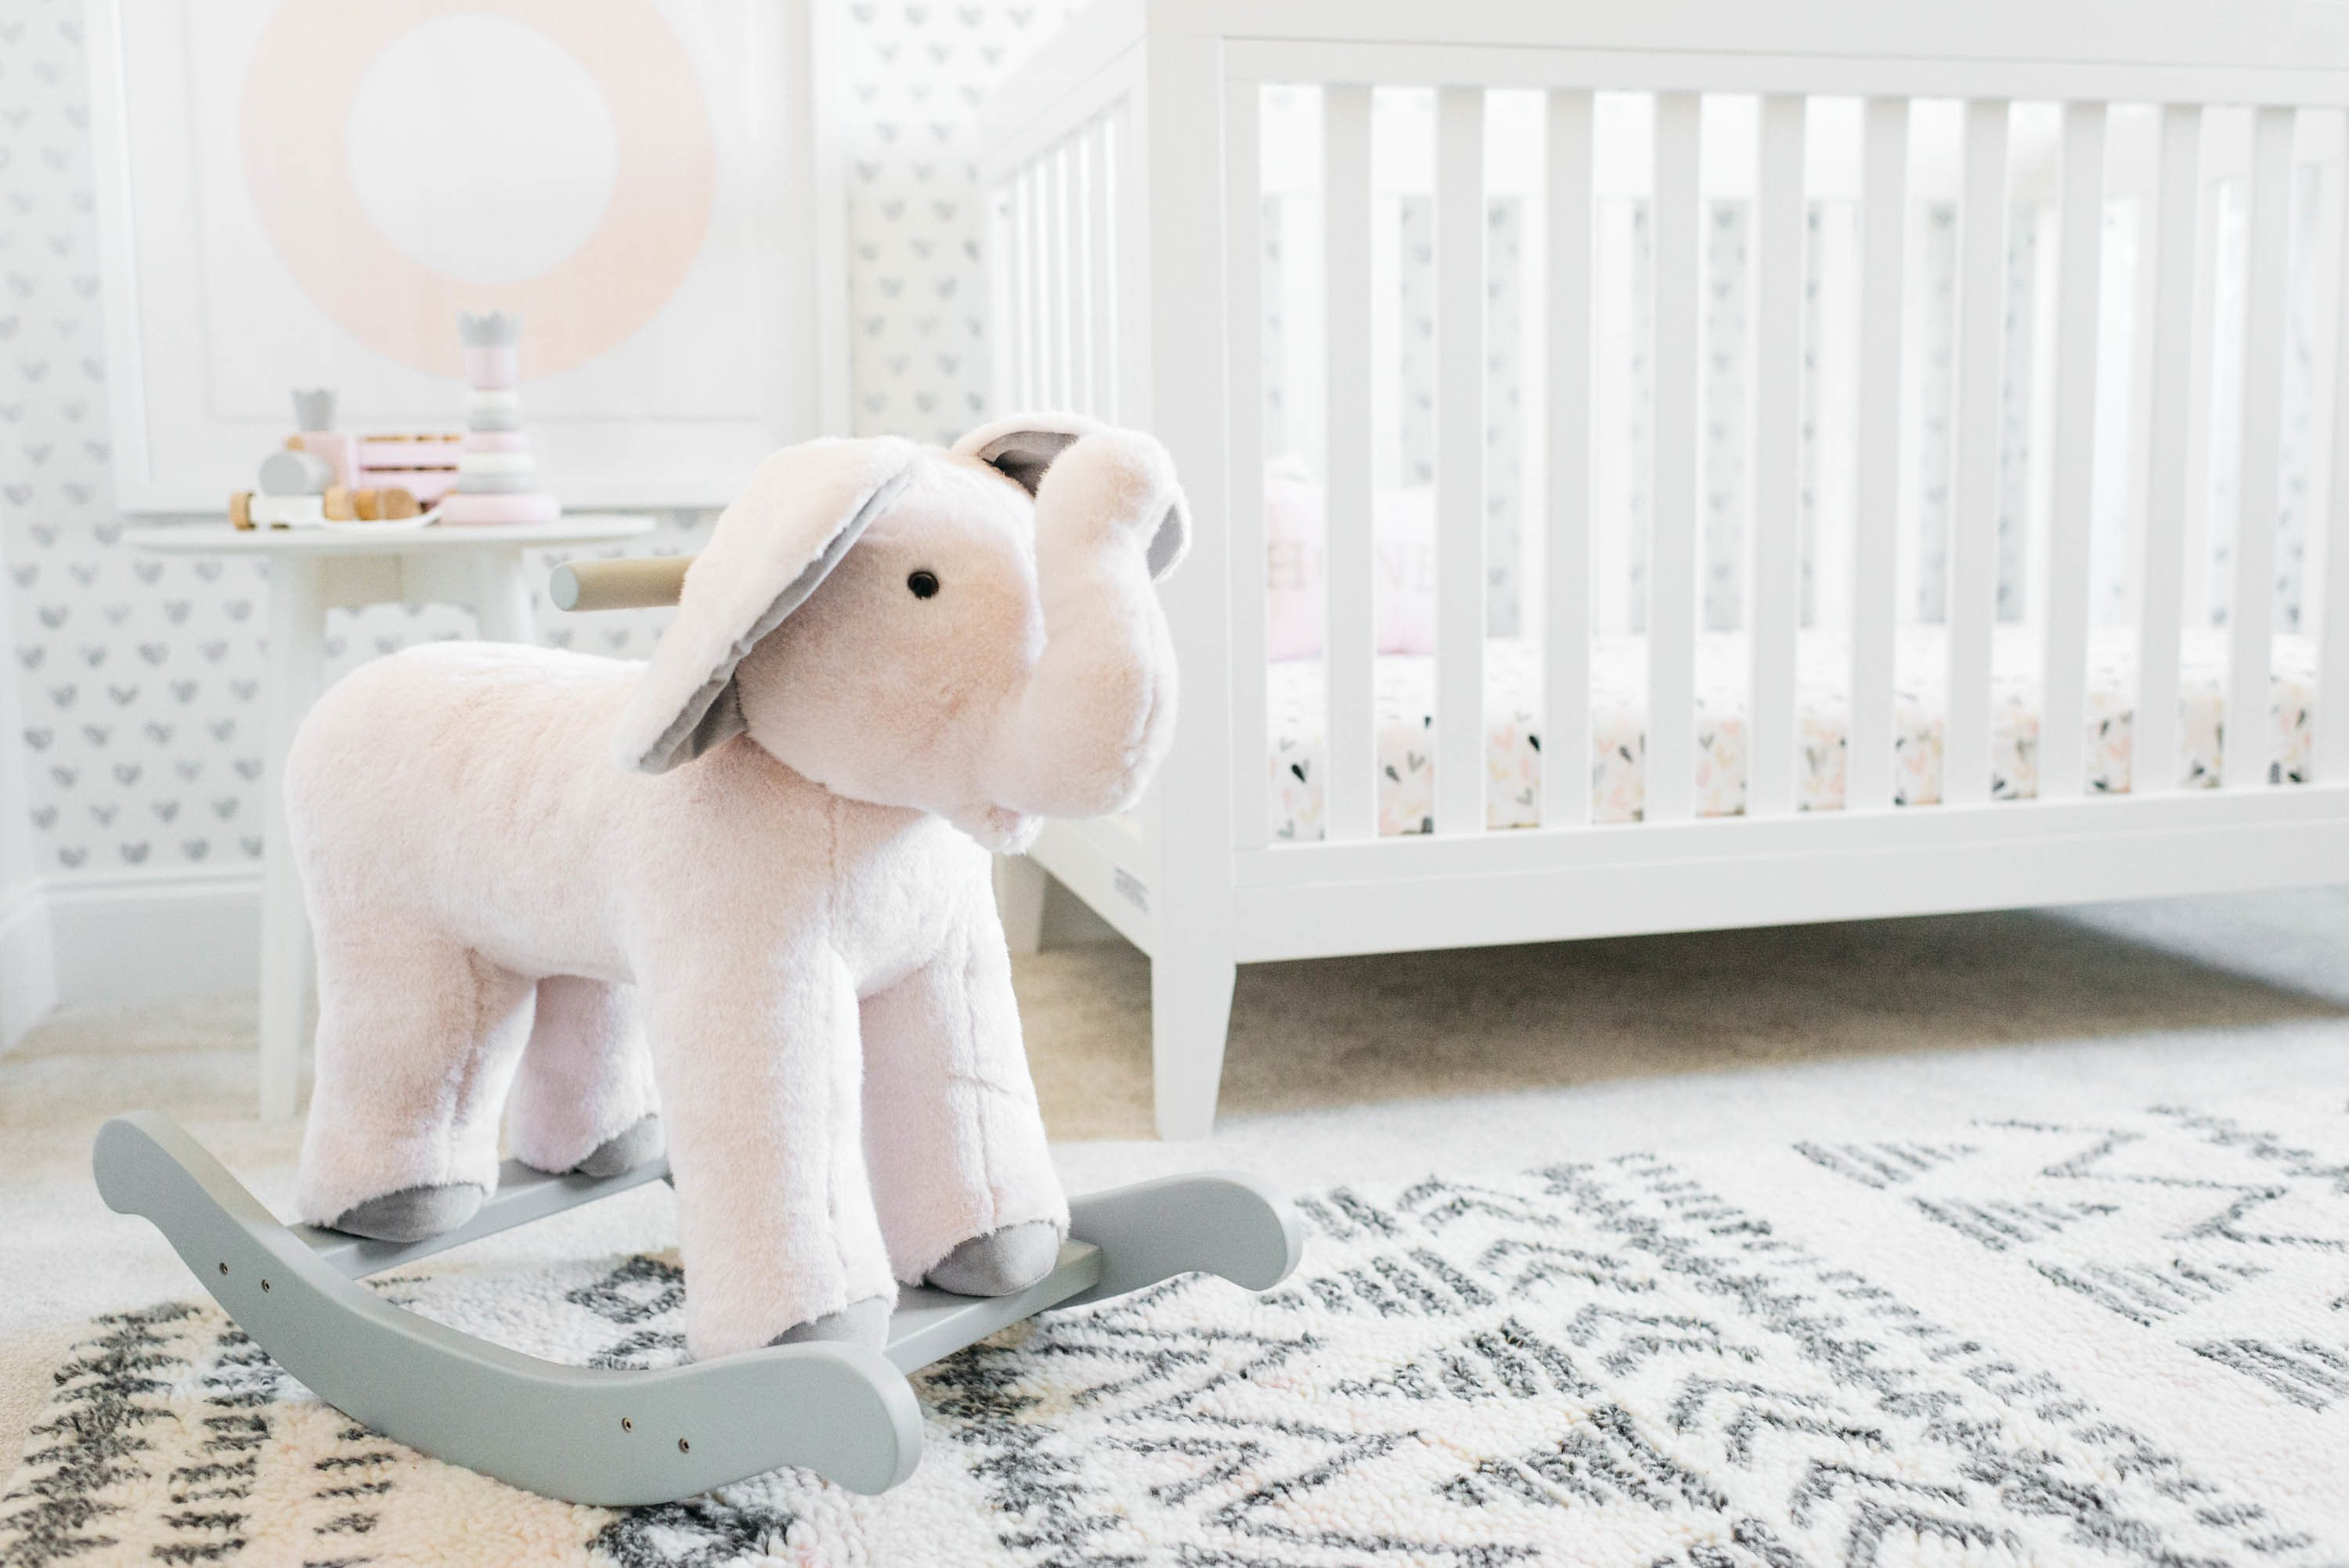 Elephant Rocker in Girl's Pink, White and Gray Nursery - gorgeous decor + crib from @potterybarnkids with @projectnursery styling! #PNpartner